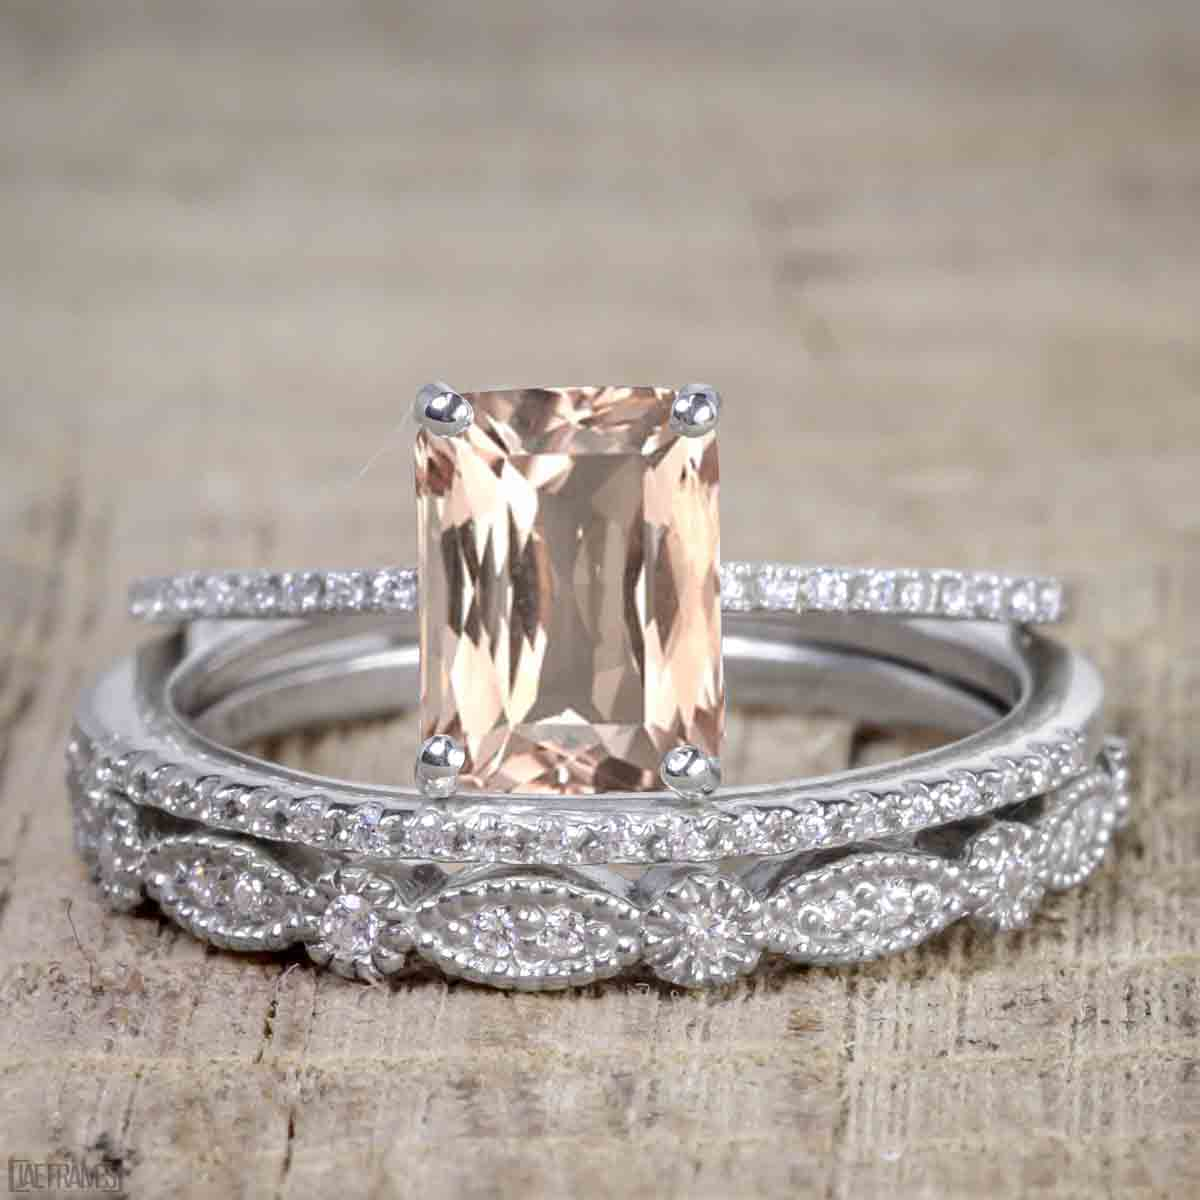 Artdeco 1.50 Carat Morganite cut Morganite and Diamond Trio Wedding Bridal Ring Set White Gold by JeenMata